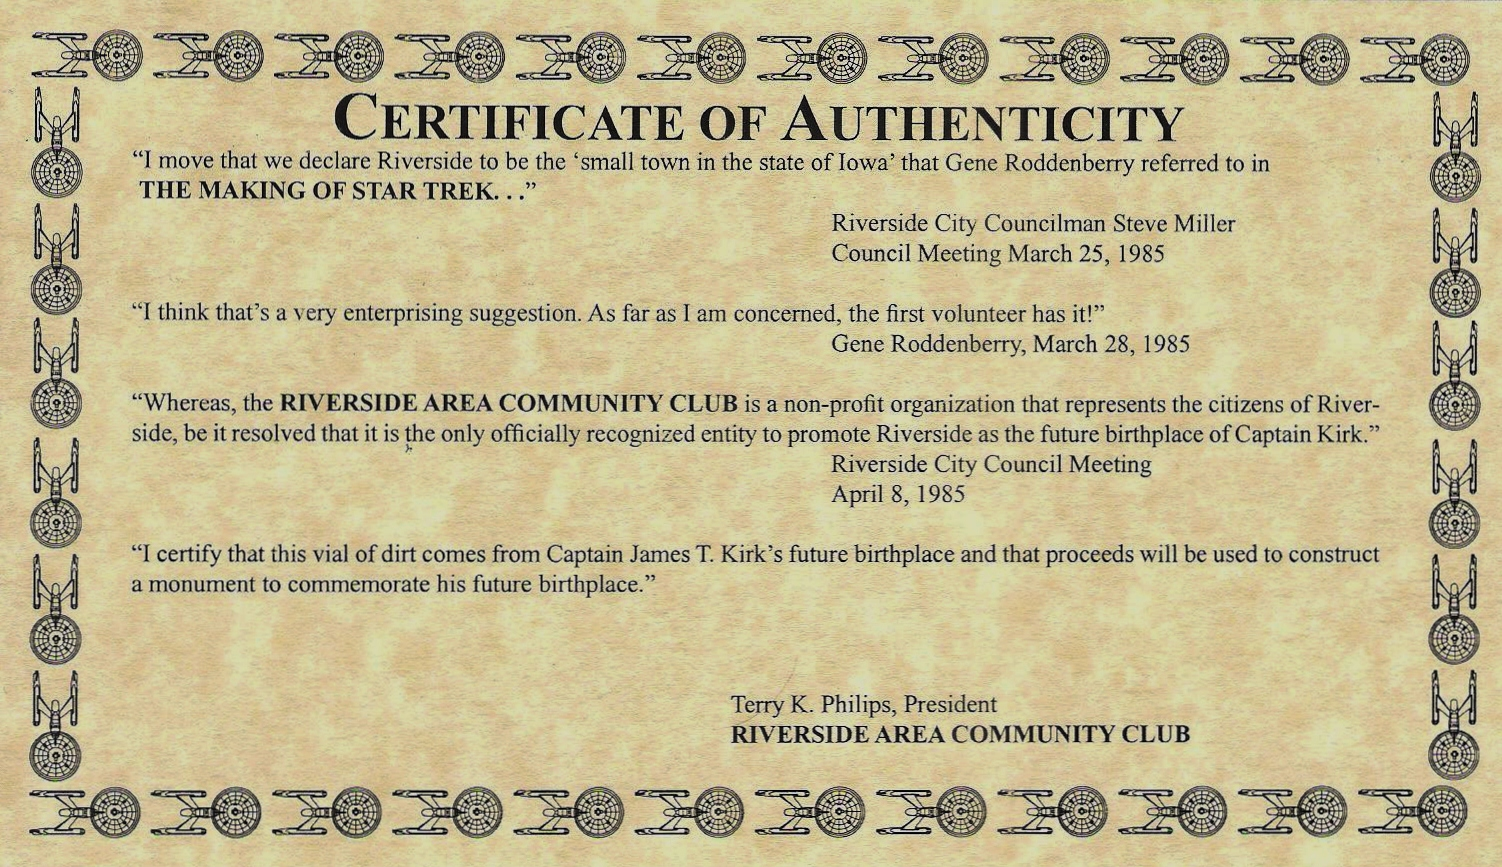 Certificate authenticity template free images certificate design free certificate of authenticity template images templates xflitez Image collections